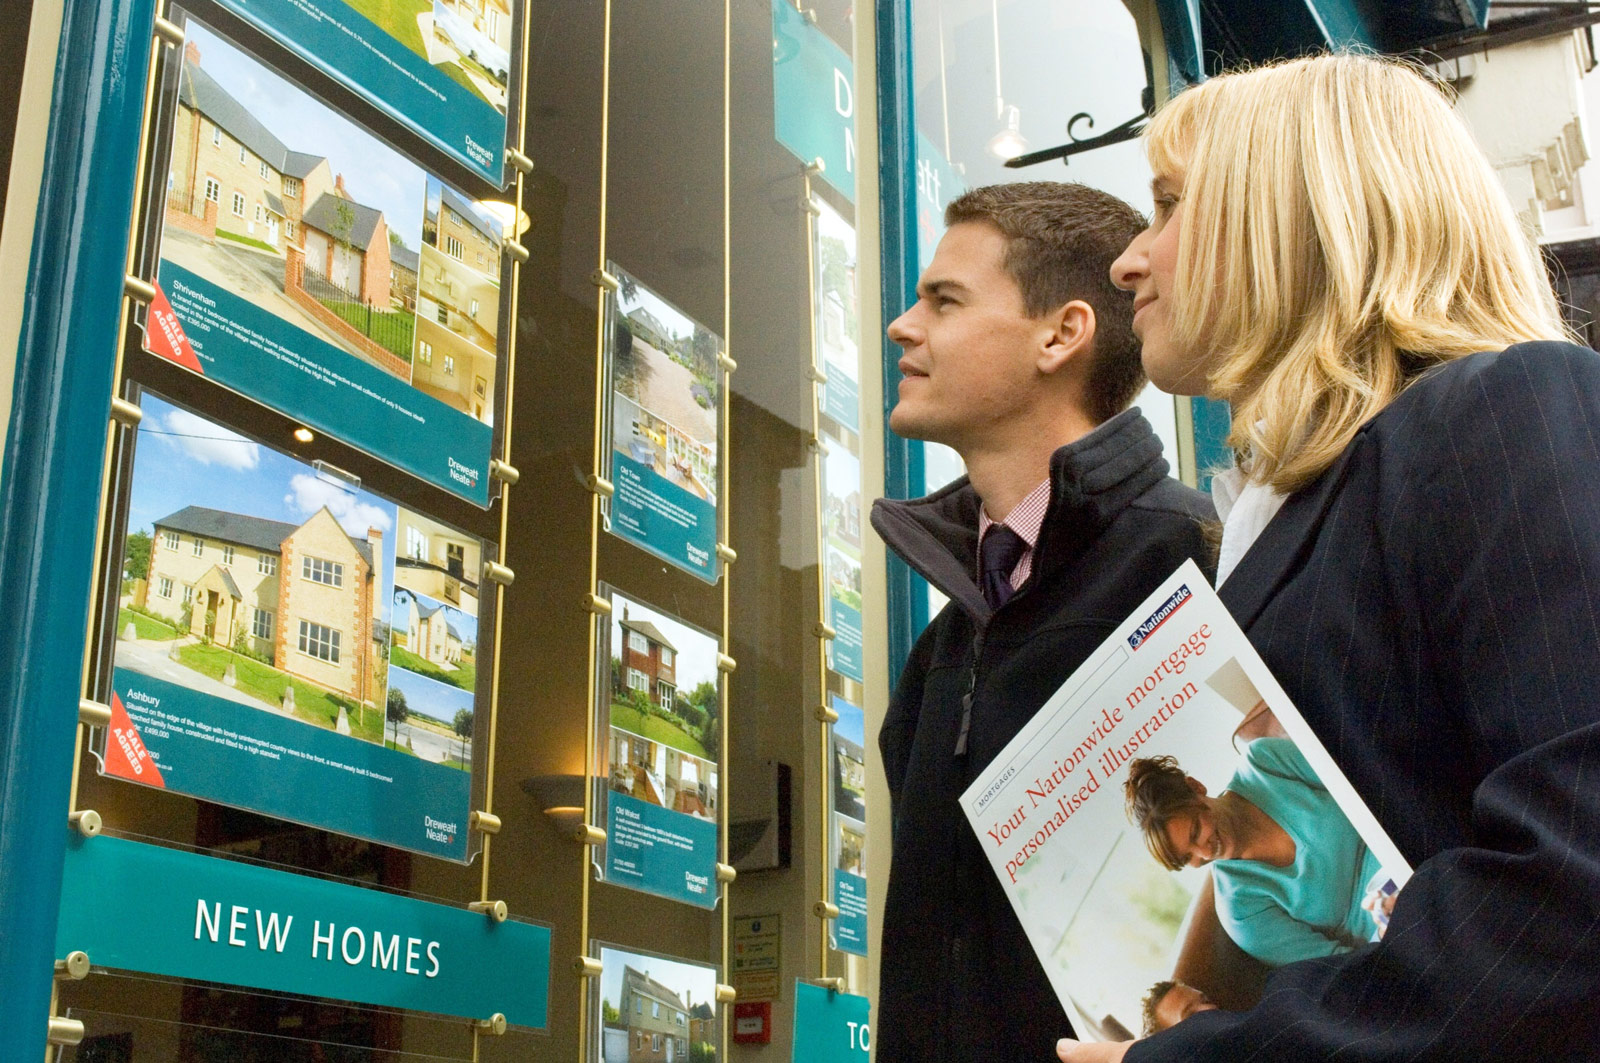 The Nationwide HPI Shows August Increase In UK House Price Growth